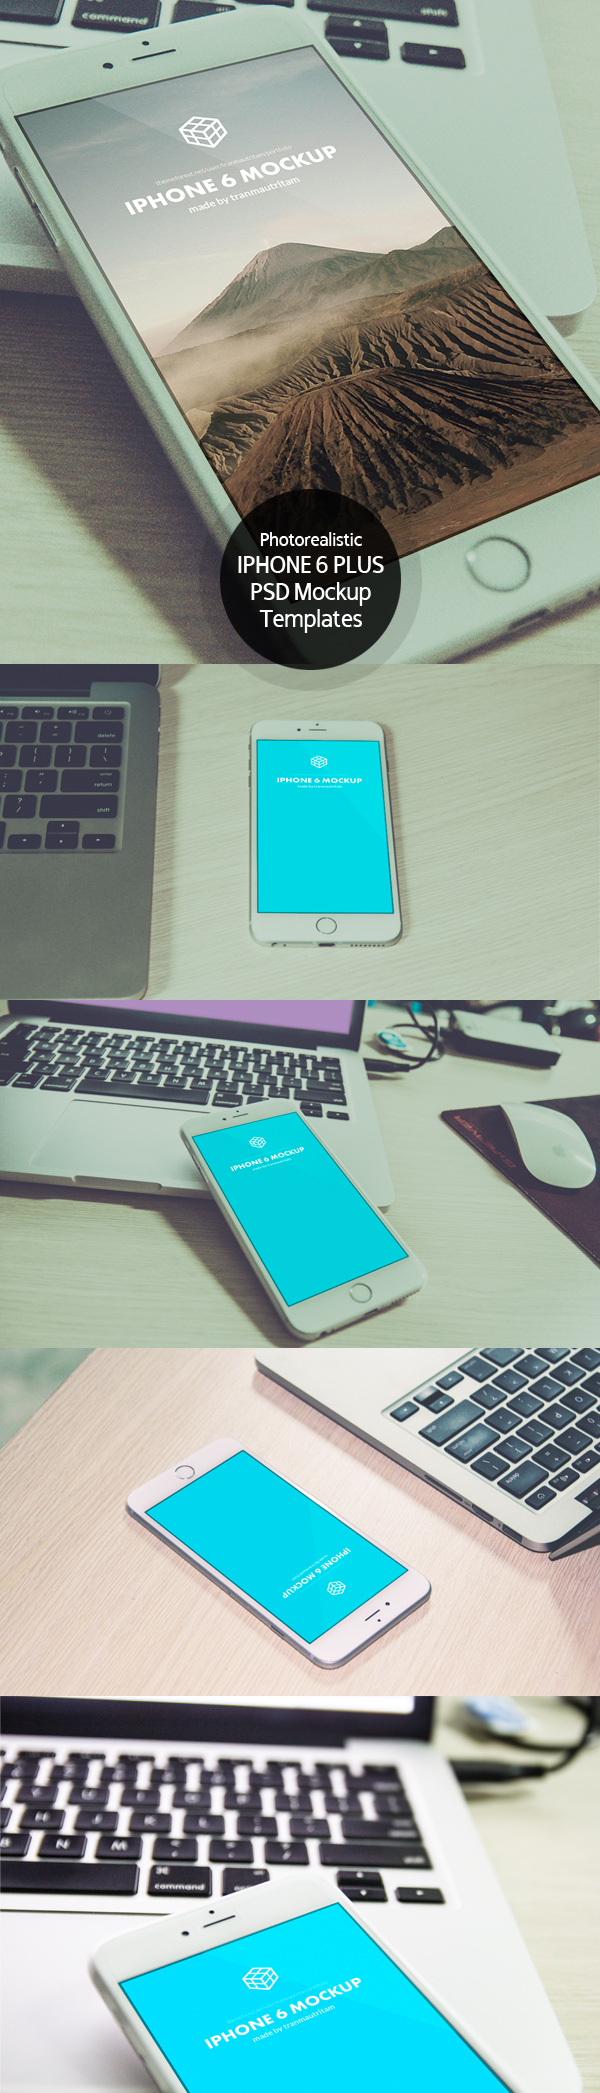 Free Photorealistic iPhone 6 Plus PSD Mockup Templates